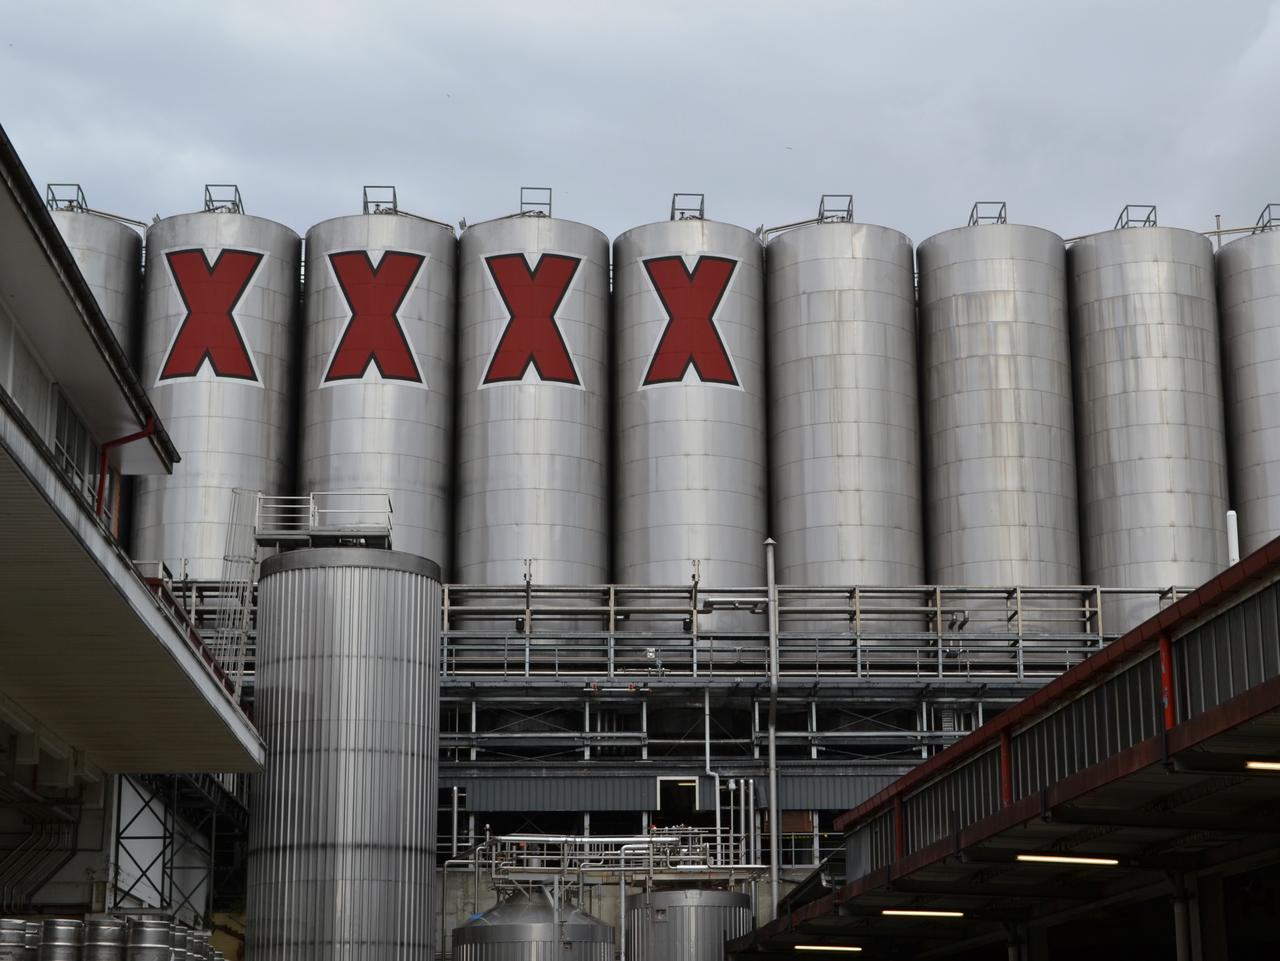 The landmark Fourex Brewery silos are a measure of the size and capacity of the popular brand.